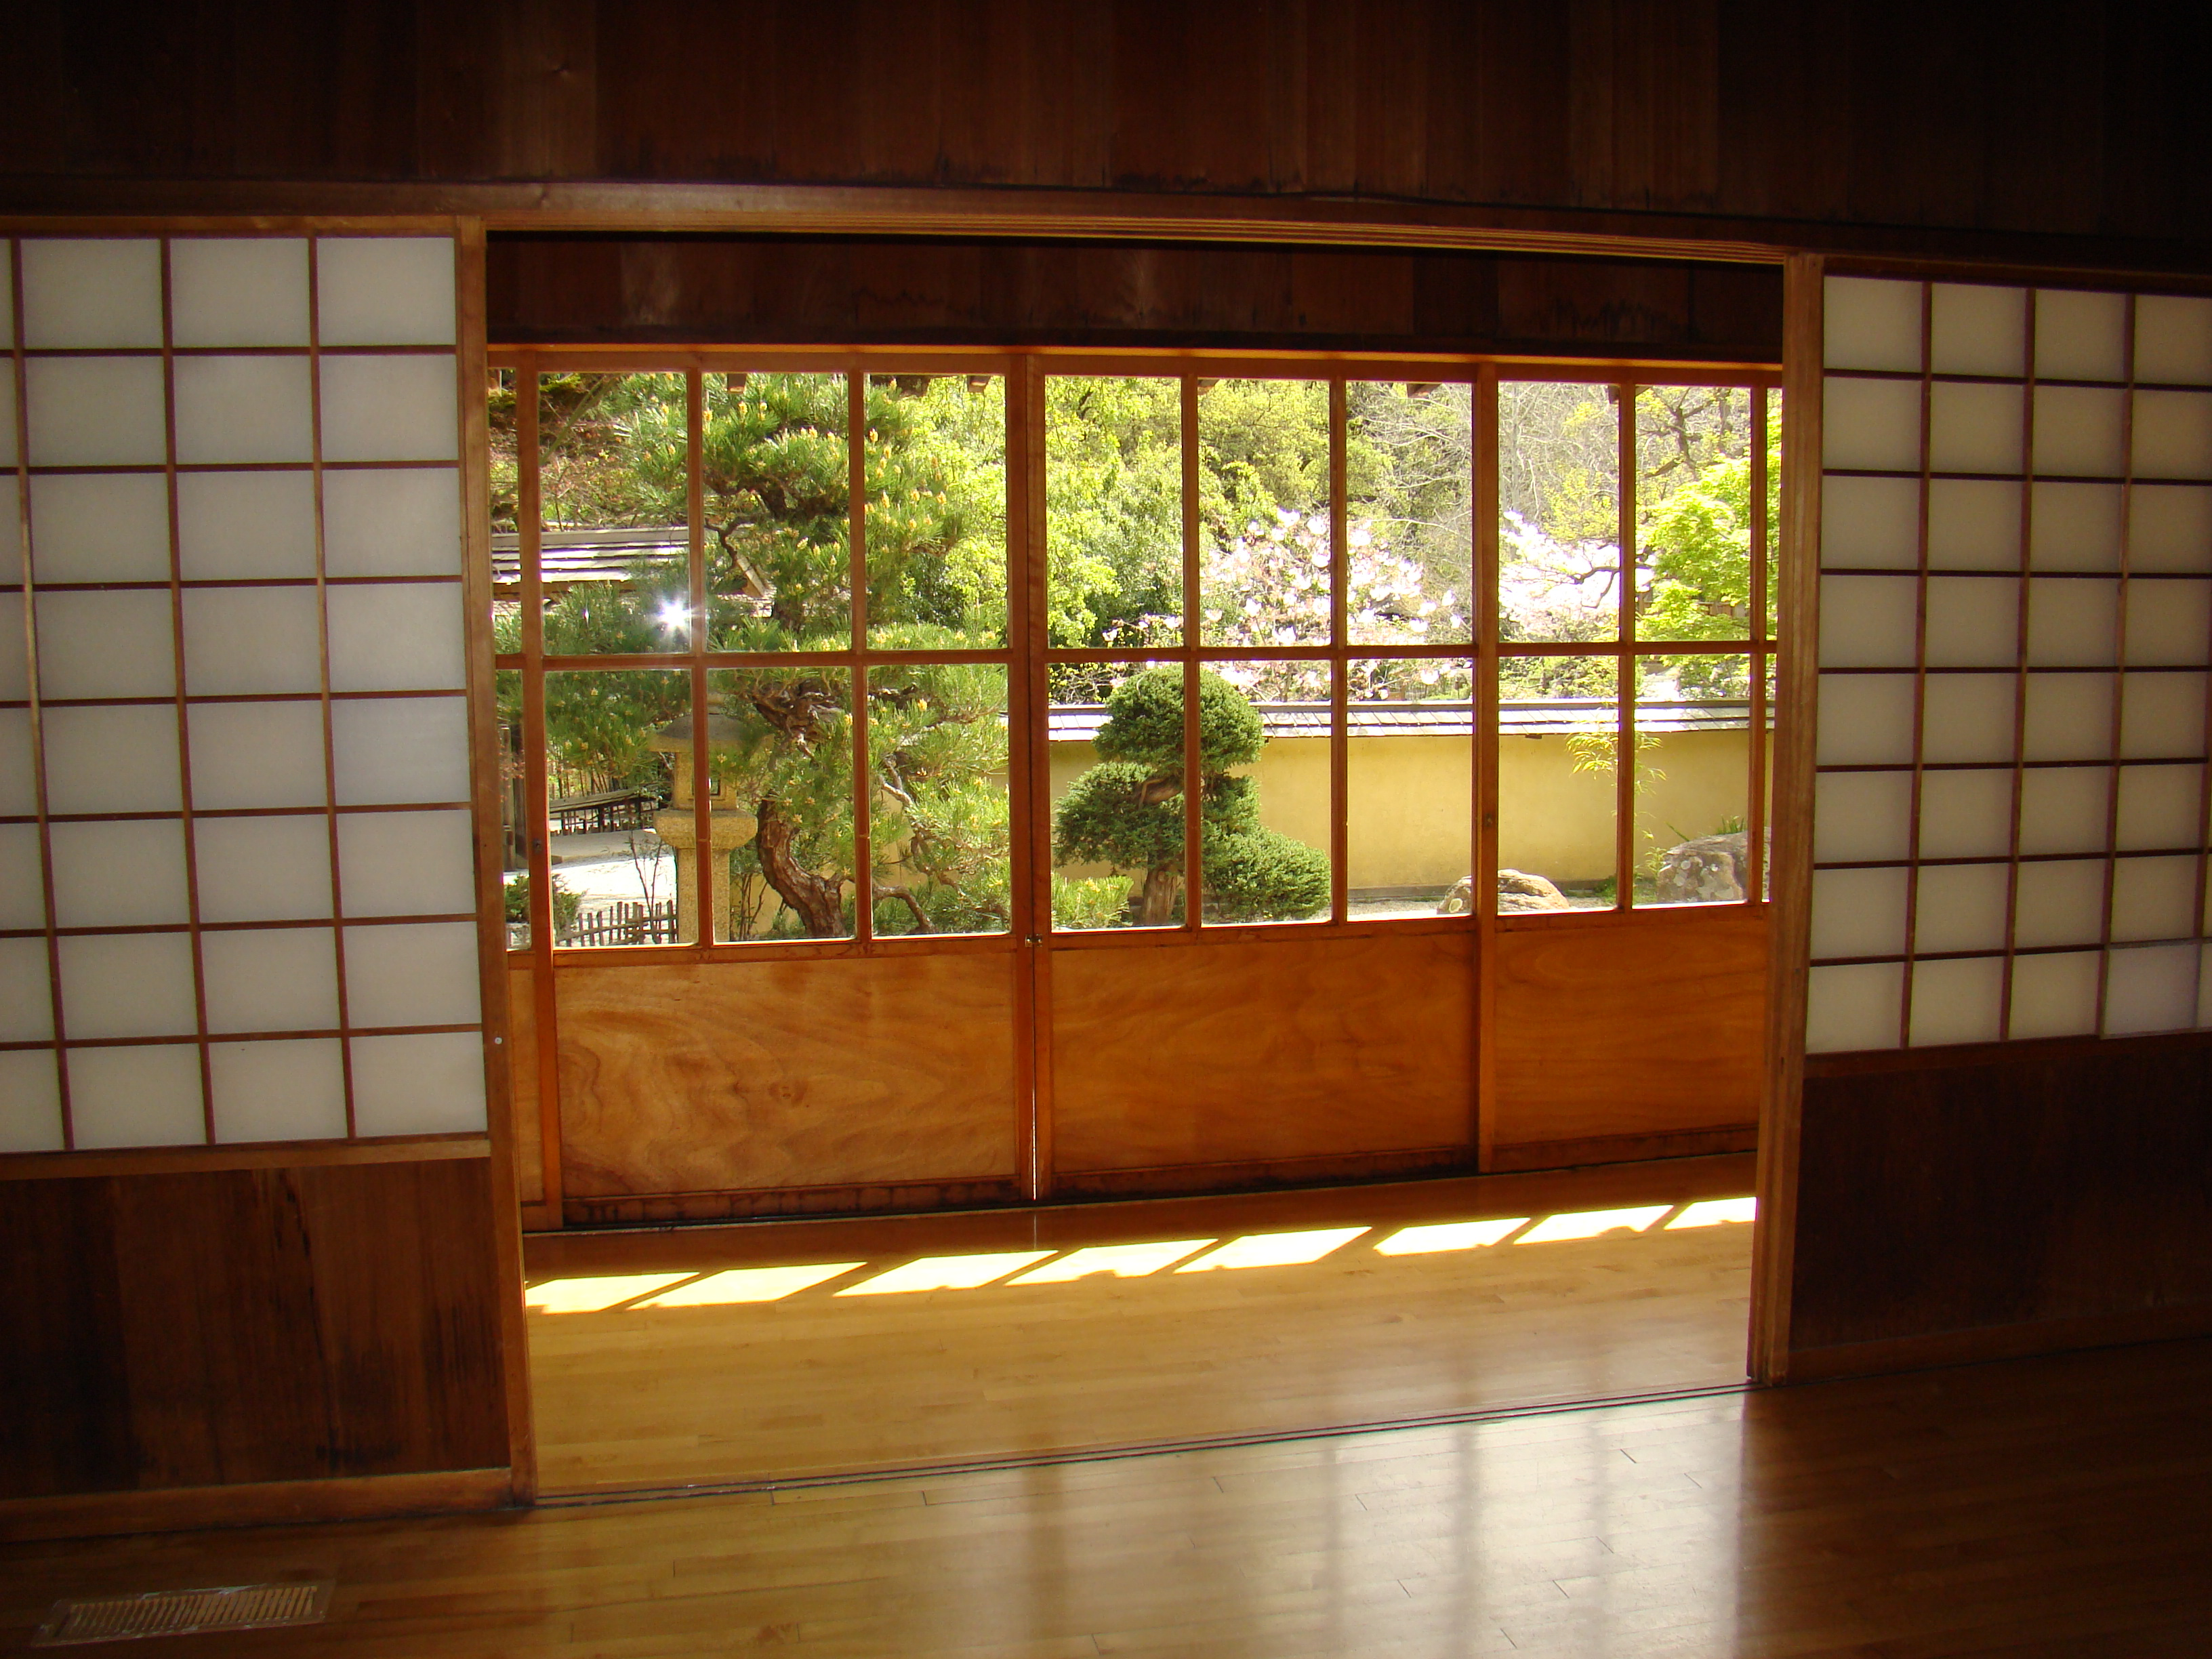 Lower House interior (image from Hakone Estate & Gardens)